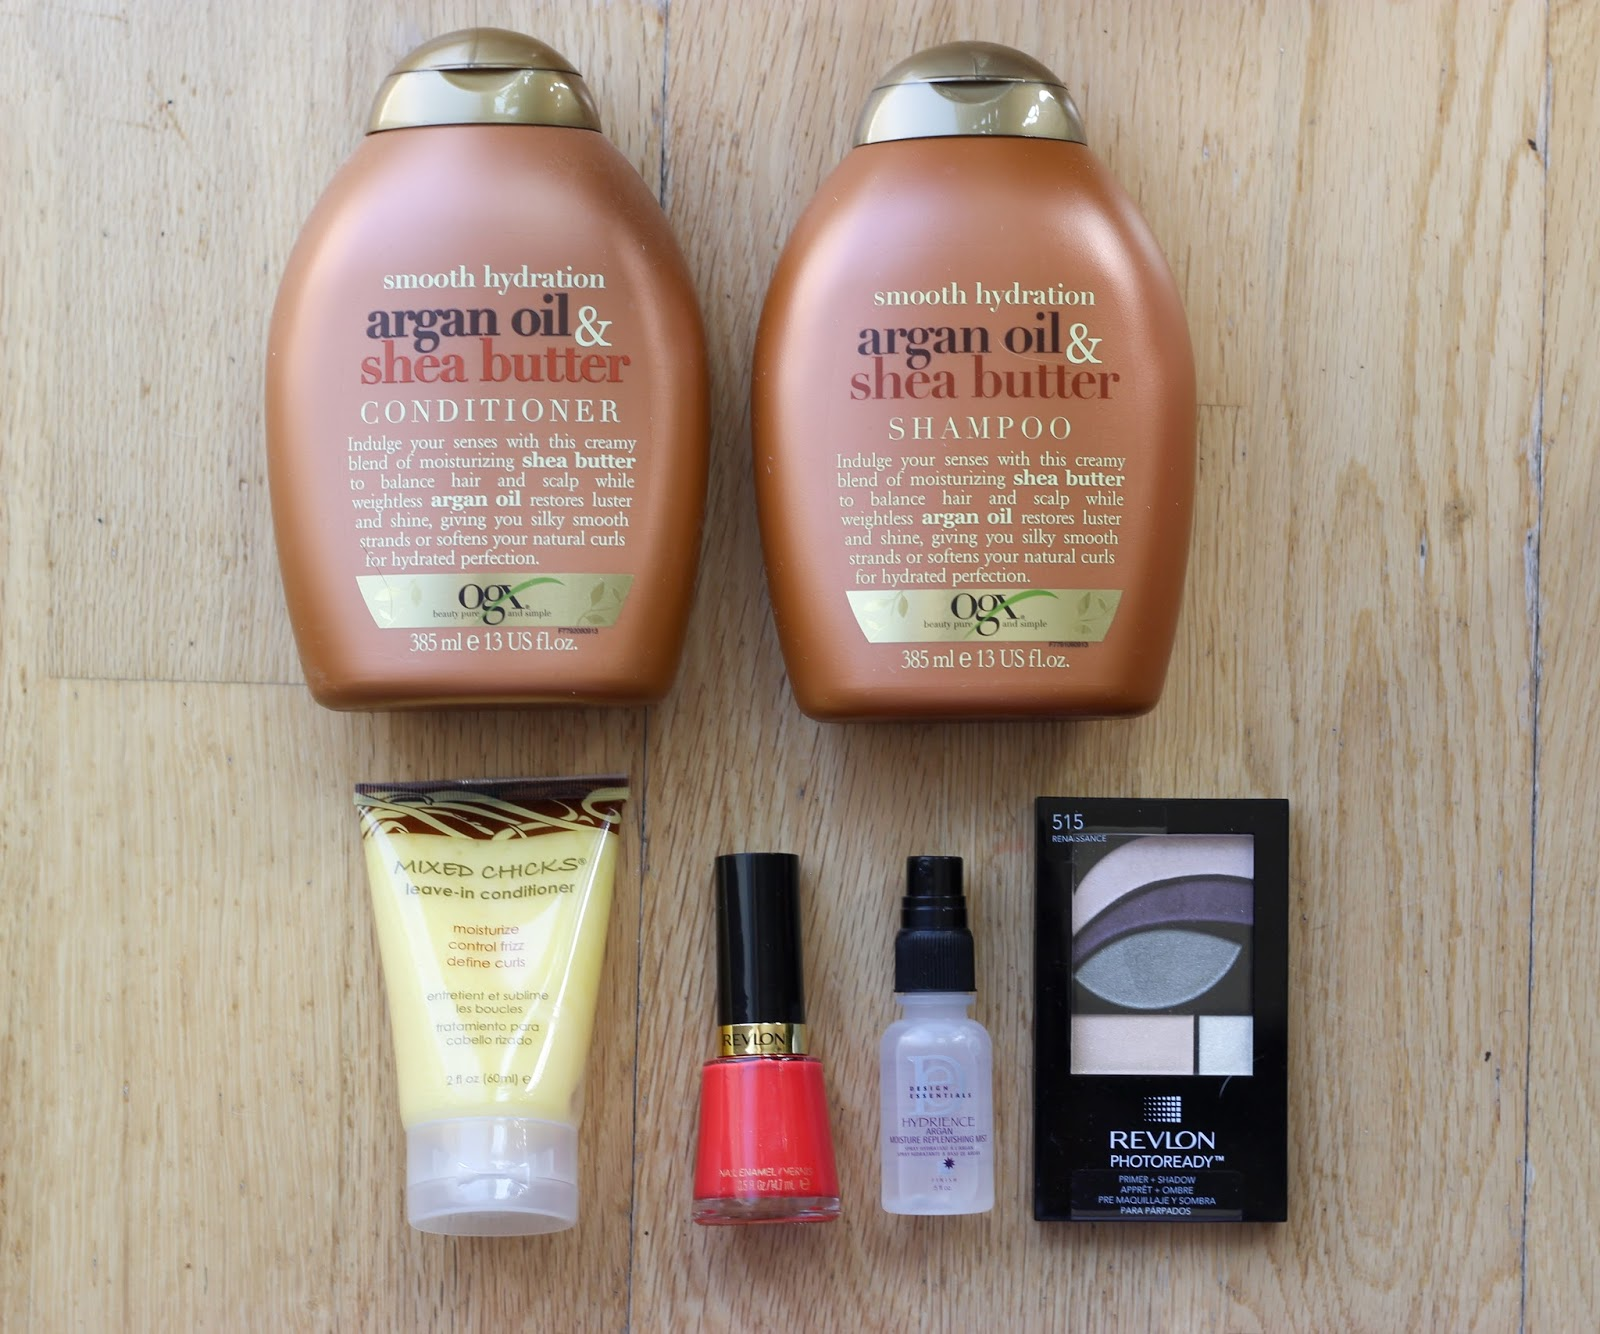 Glowwbox August beauty blogger woc discoveriesofself glowwbox review revlon ogx mixed chicks